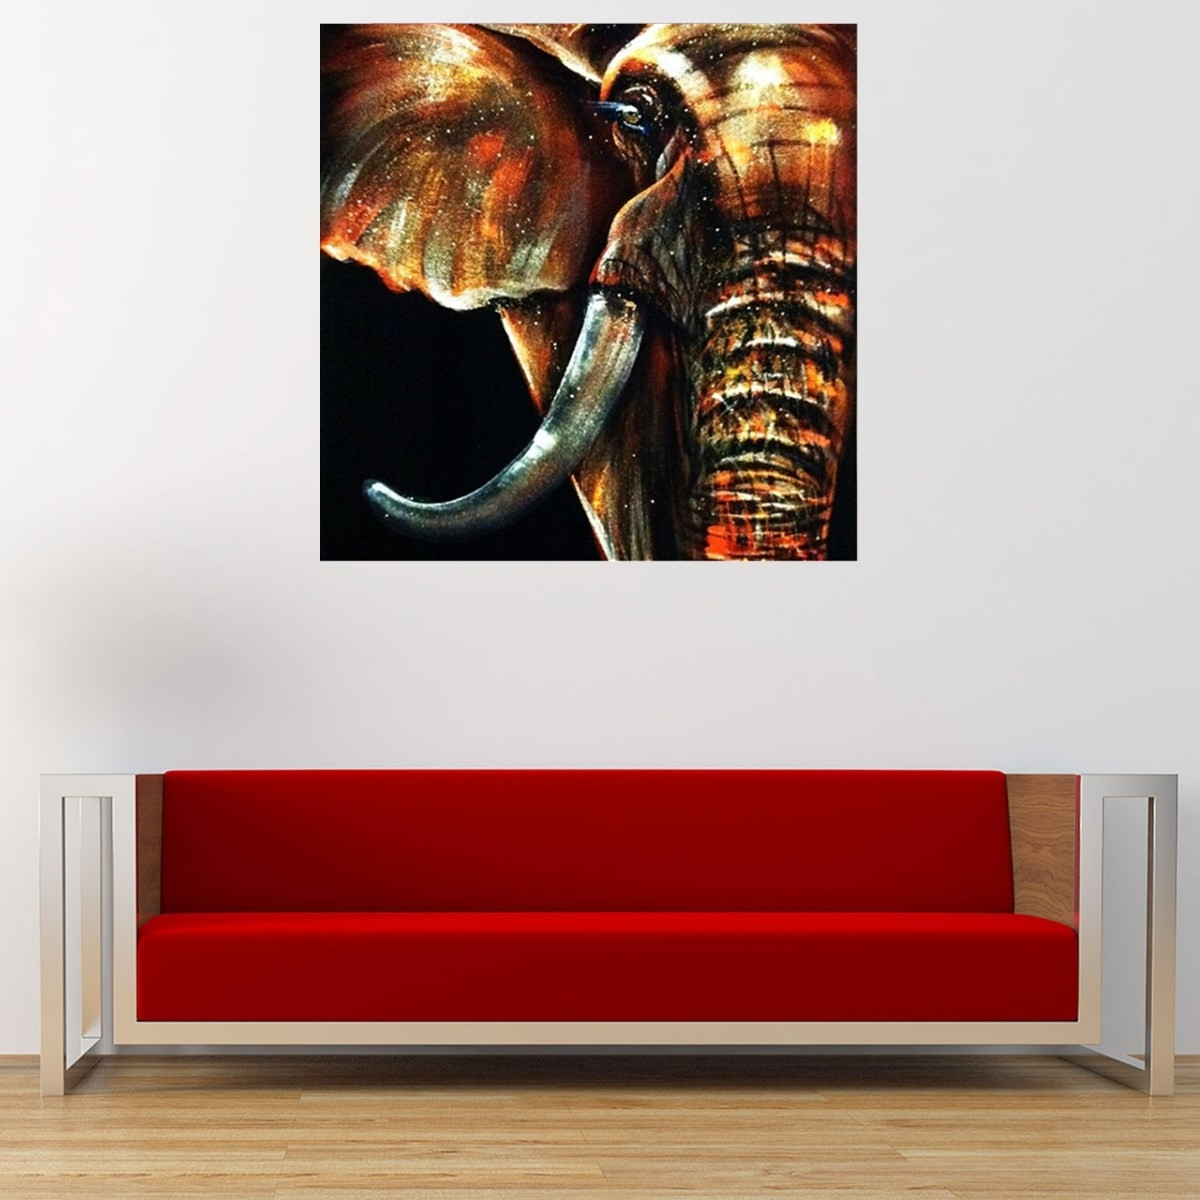 50X50Cm Modern Abstract Huge Elephant Wall Art Decor Oil Painting On For Elephant Wall Art (Photo 12 of 20)